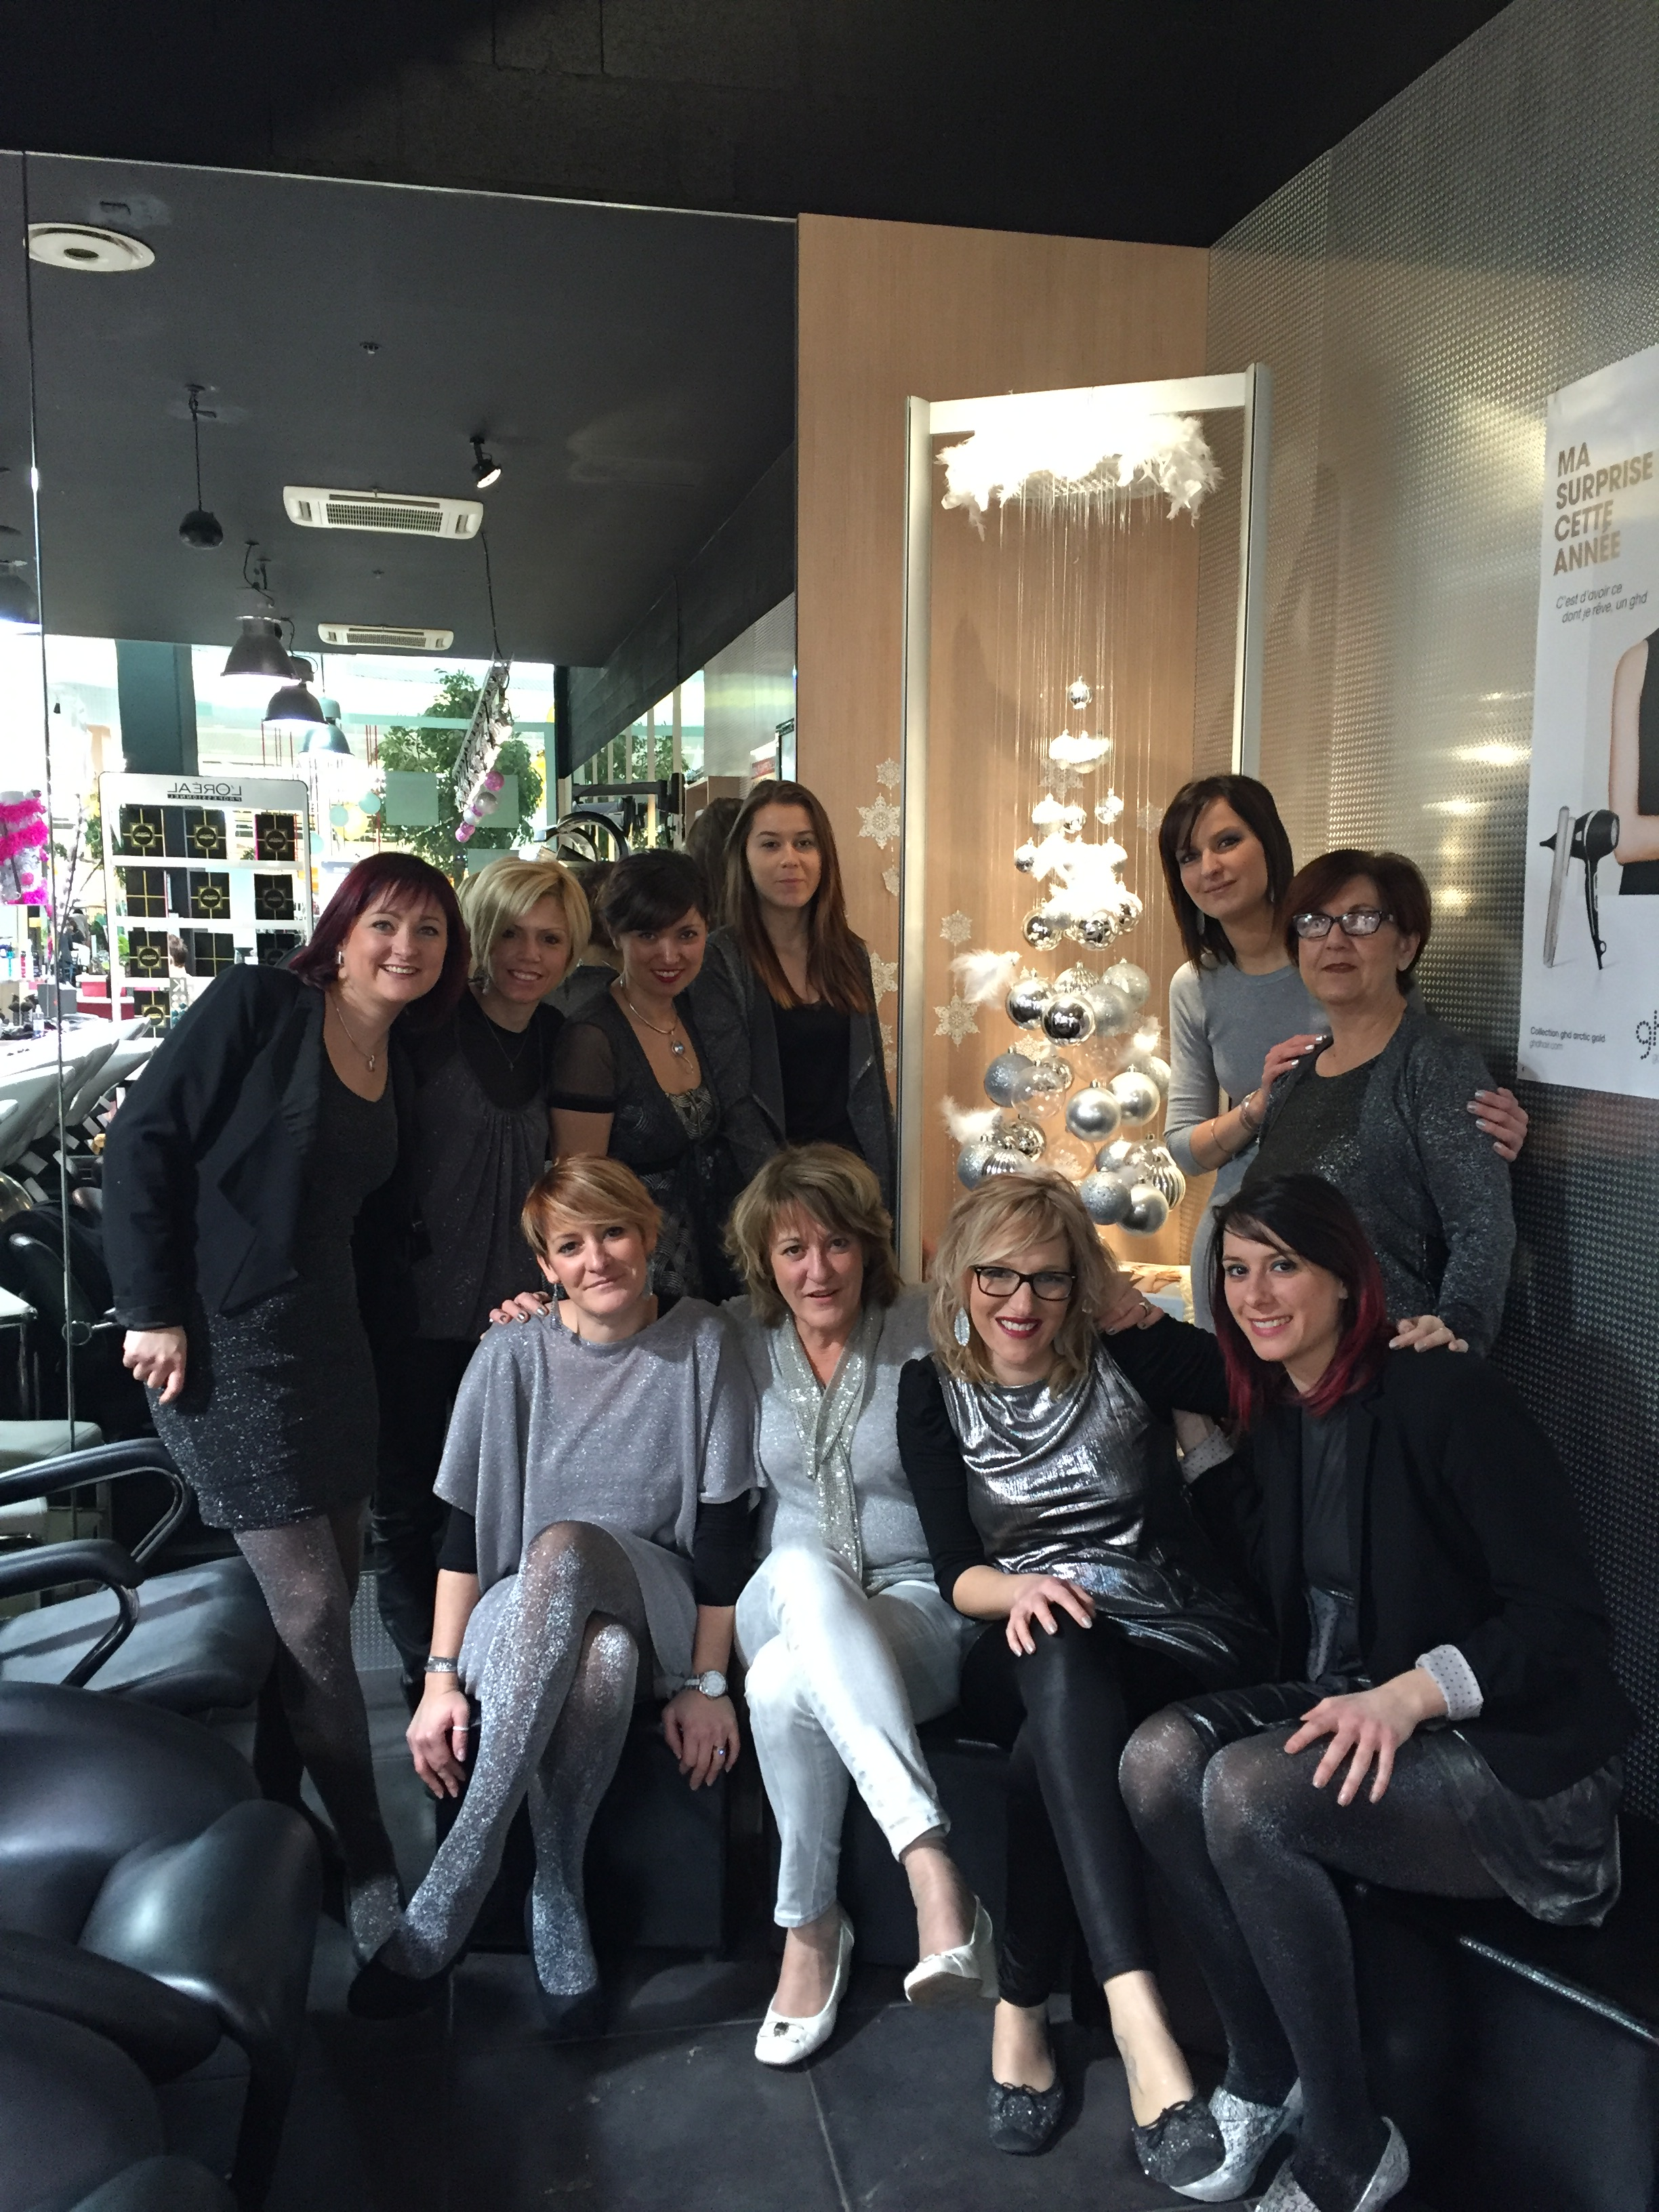 Champfleury noel 2015 coiffeur visagiste reims salon for Salon reims